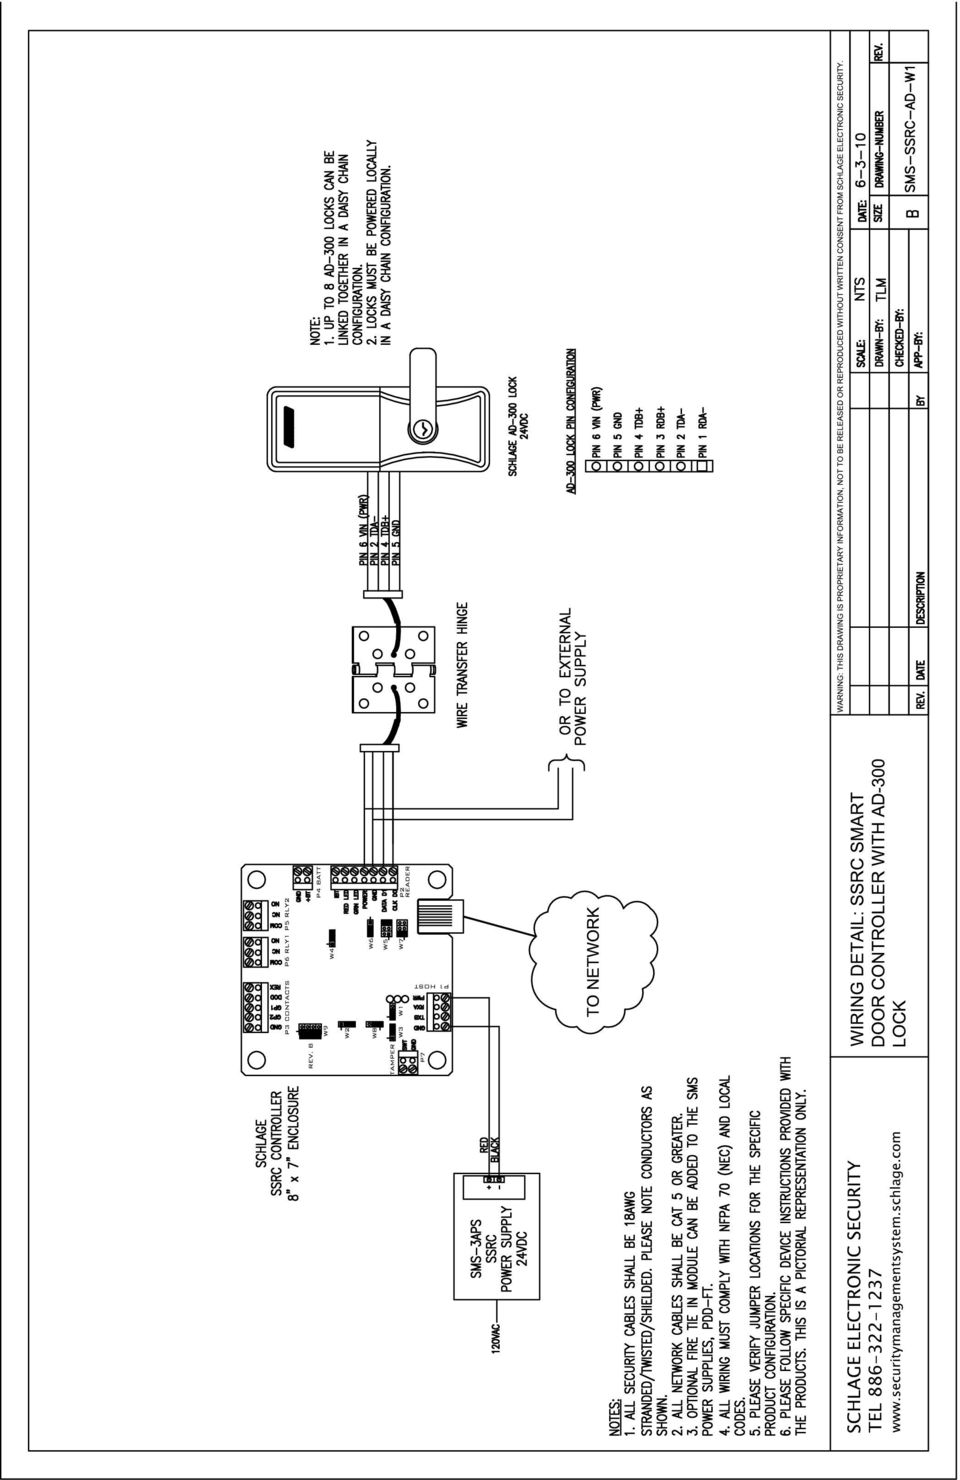 Nd80pdeu Spa 626 Wiring Diagram Instant Leeson Motors Wiring Diagram For Wiring Diagram Schematics